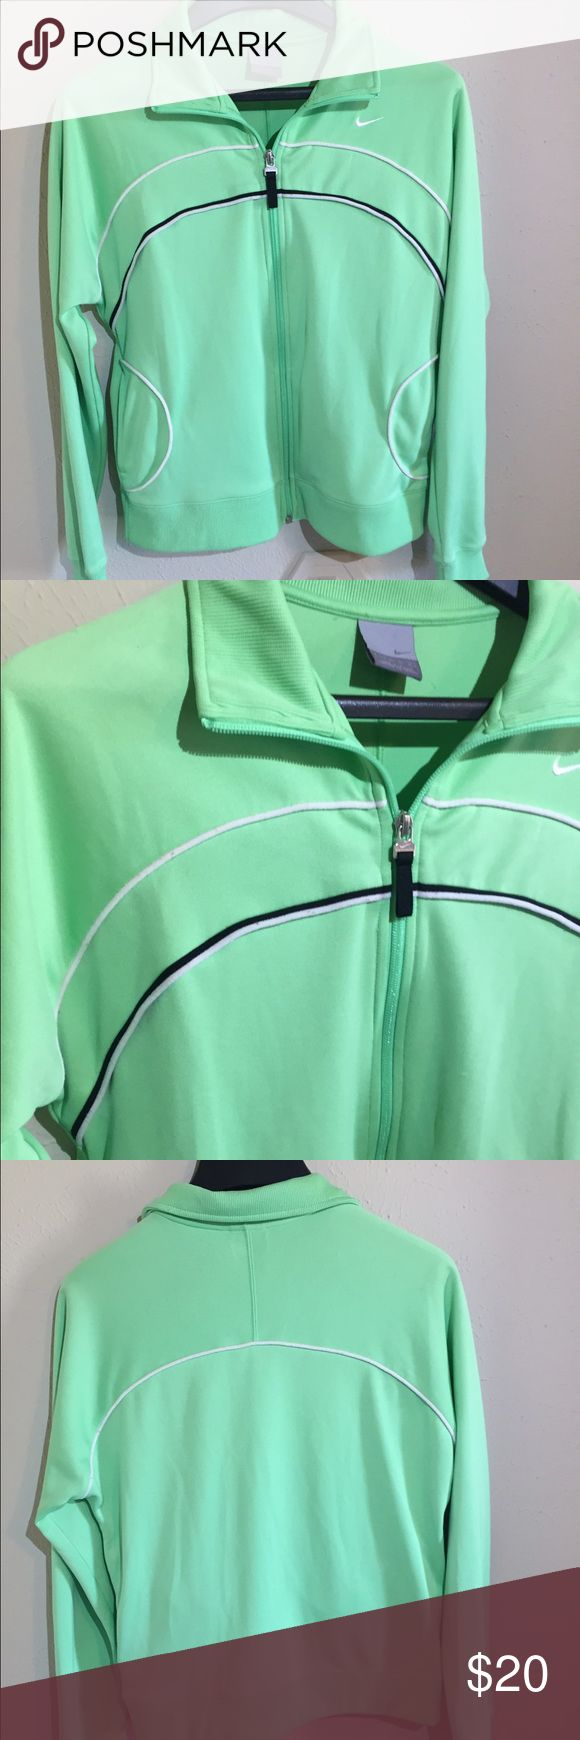 Nike Lime Green Zip Up Jacket Nike bright lime green jacket with black and white piping. It has a full zip front and pockets on both sides. There is elastic at the bottom, as well as on both cuffs. It is polyester, with the classic exercise jacket feel to it. Last picture shows a small stain on the right armpit. Great condition. Nike Jackets & Coats